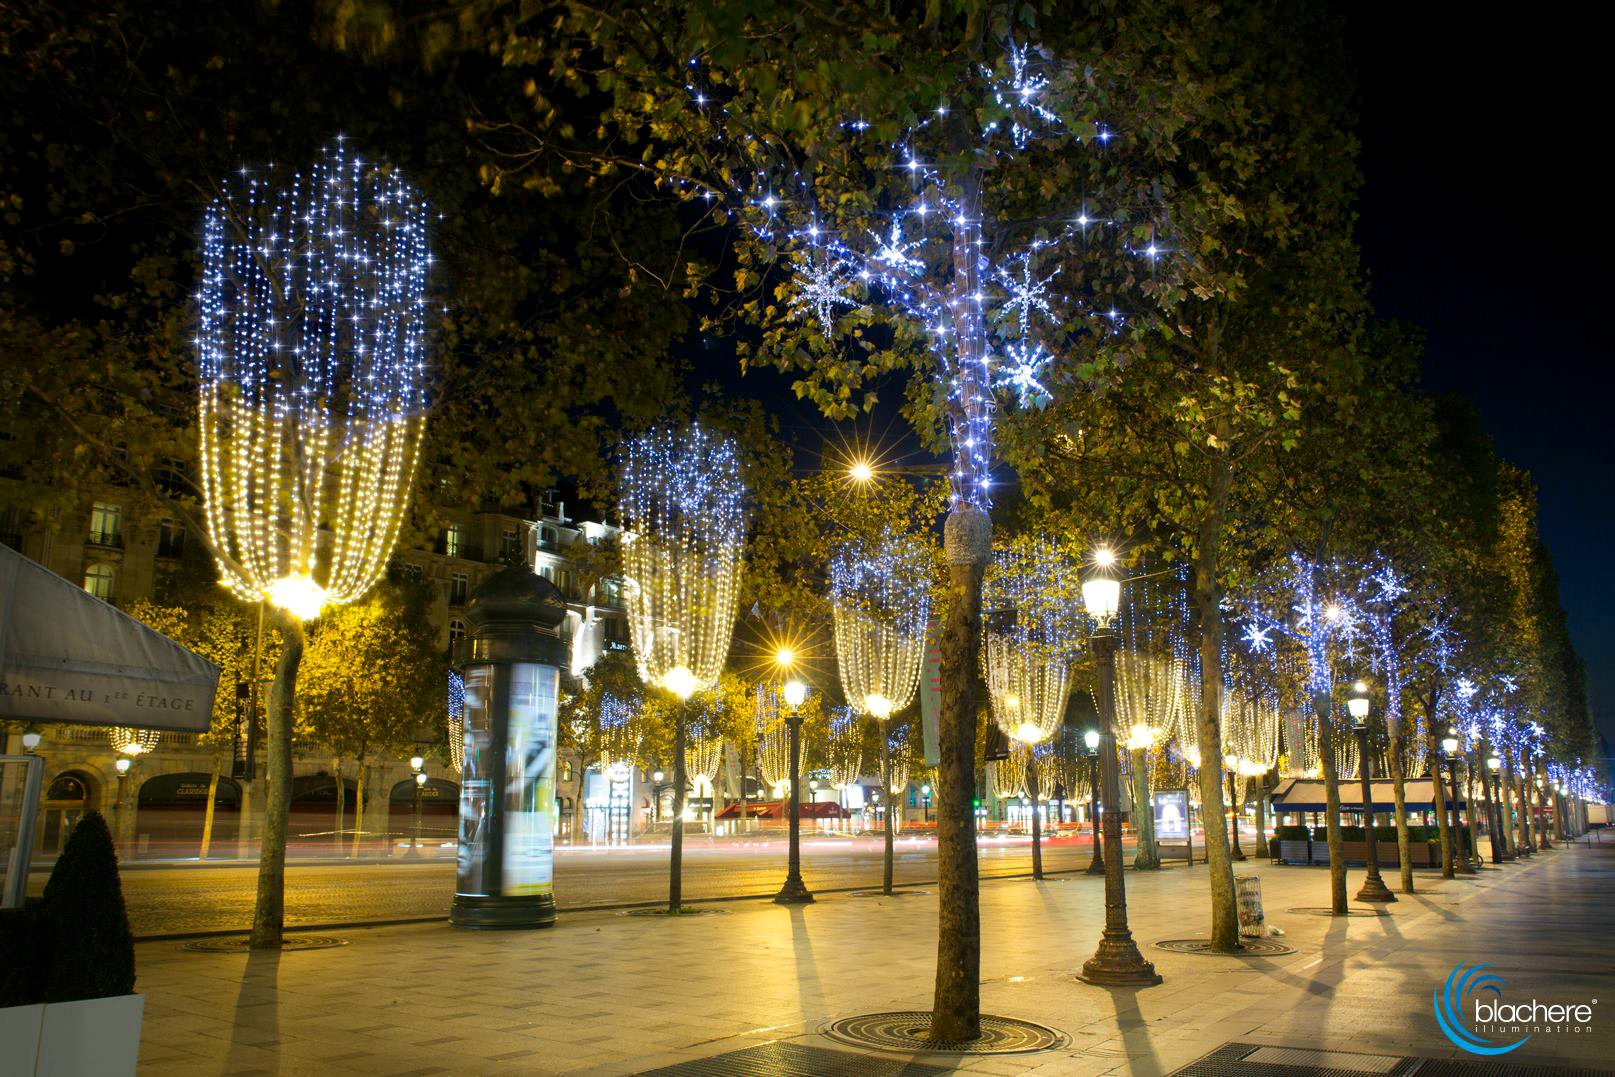 Blachere-Illumination_champs-Elysees-Paris-2014-scintillance